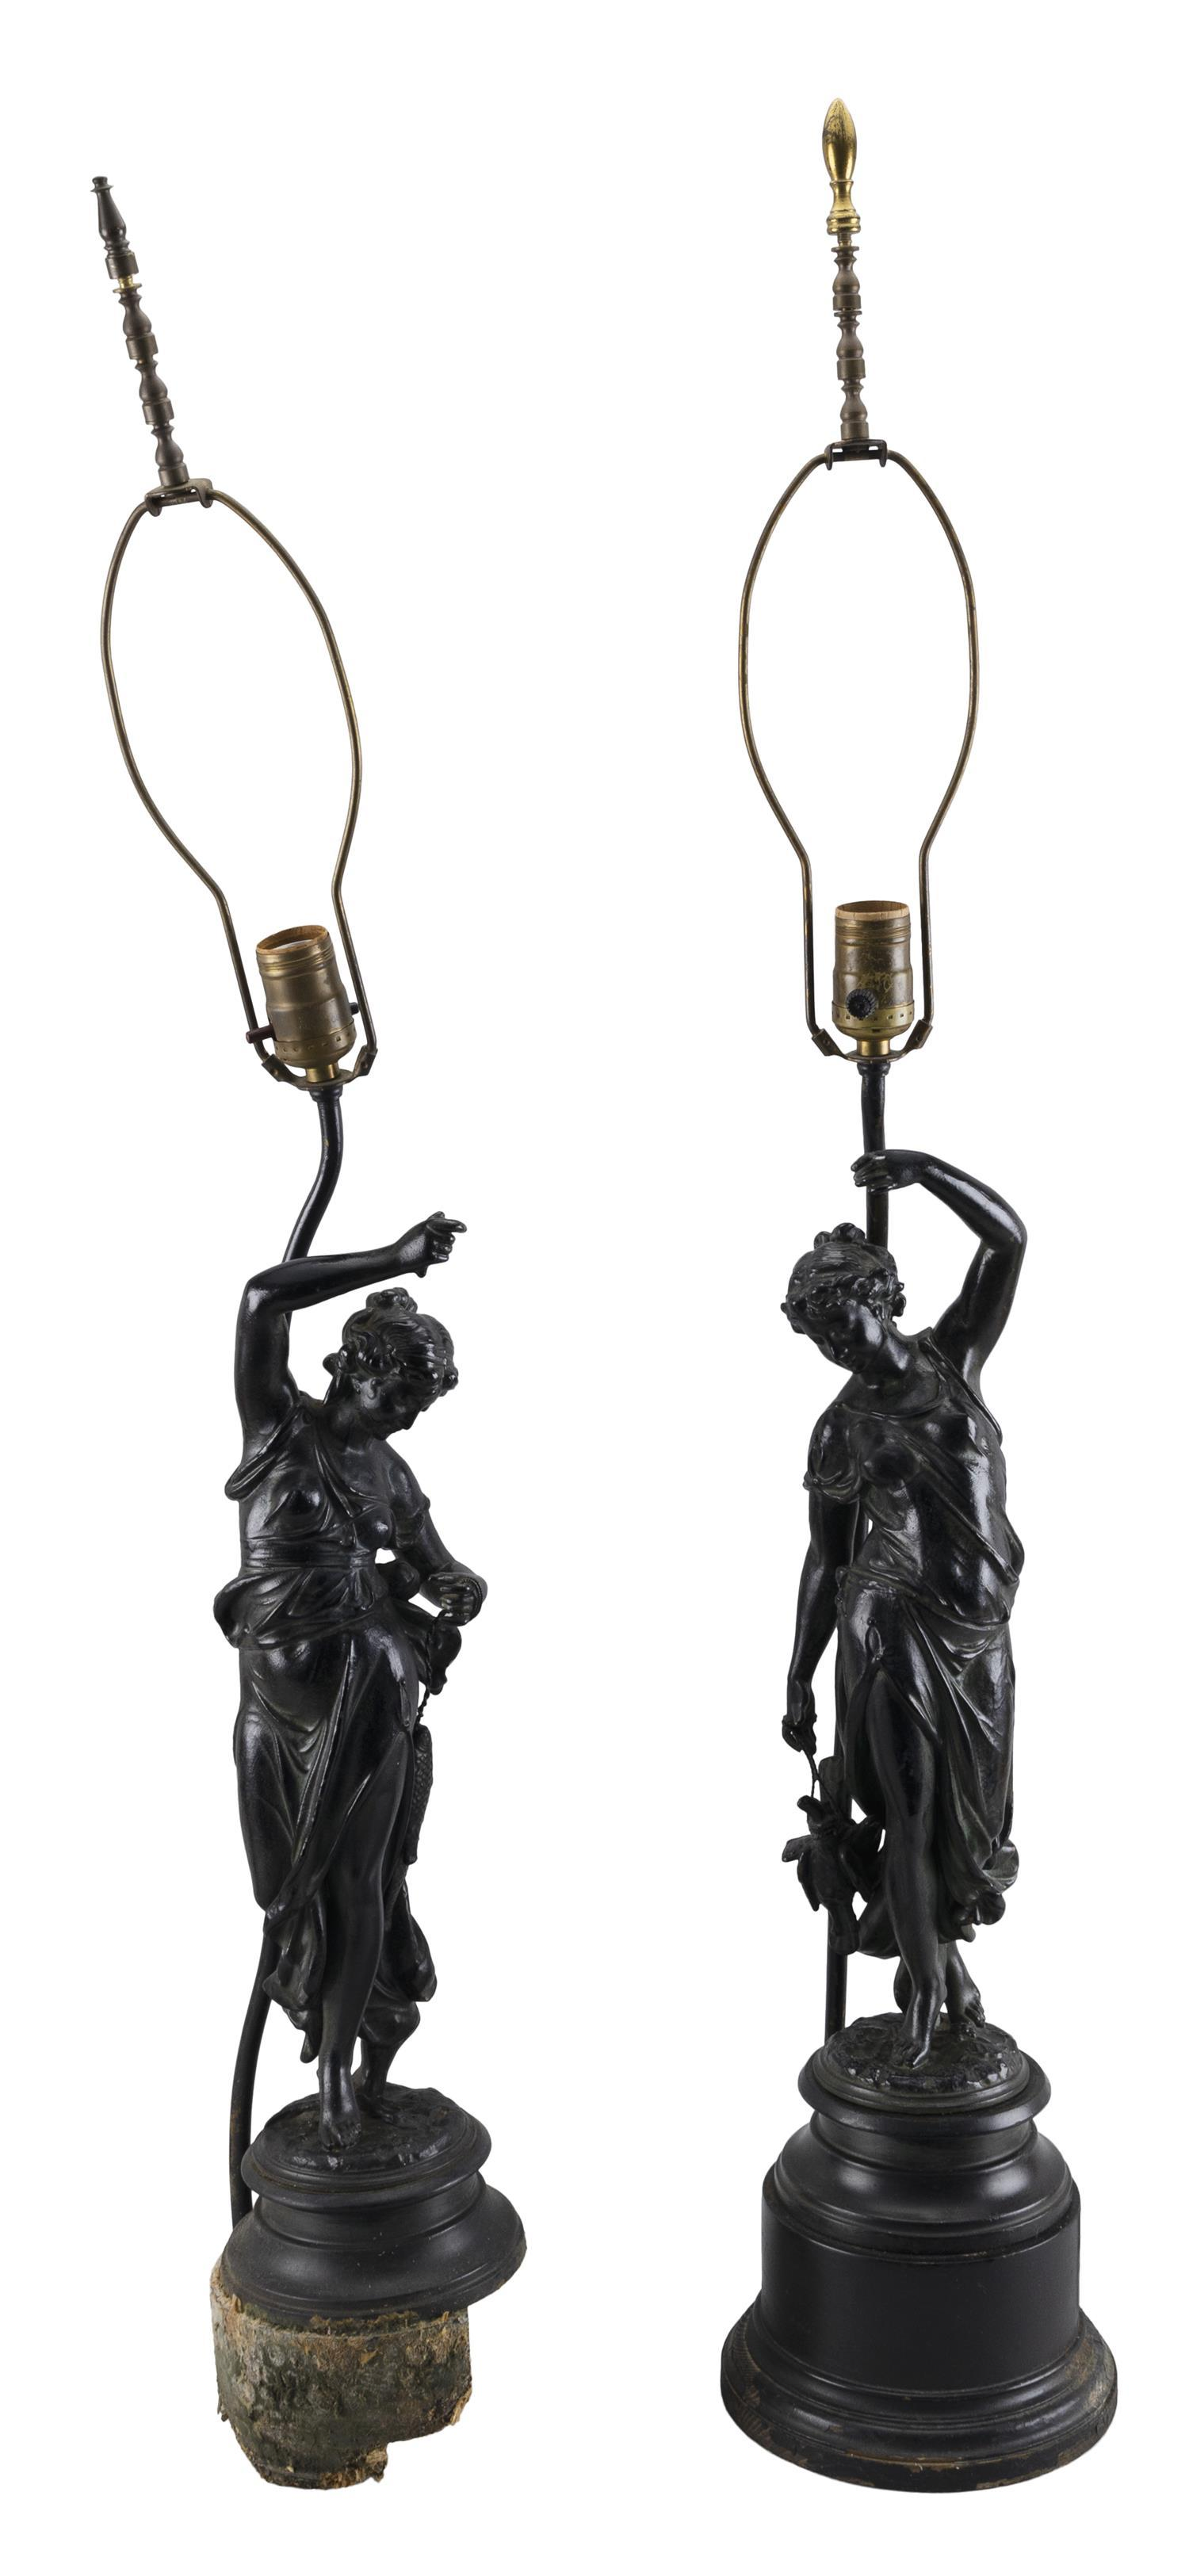 PAIR OF PAINTED METAL FIGURAL LAMPS Each in old black paint depicting a classical woman, one with game on a string, and the other mi...